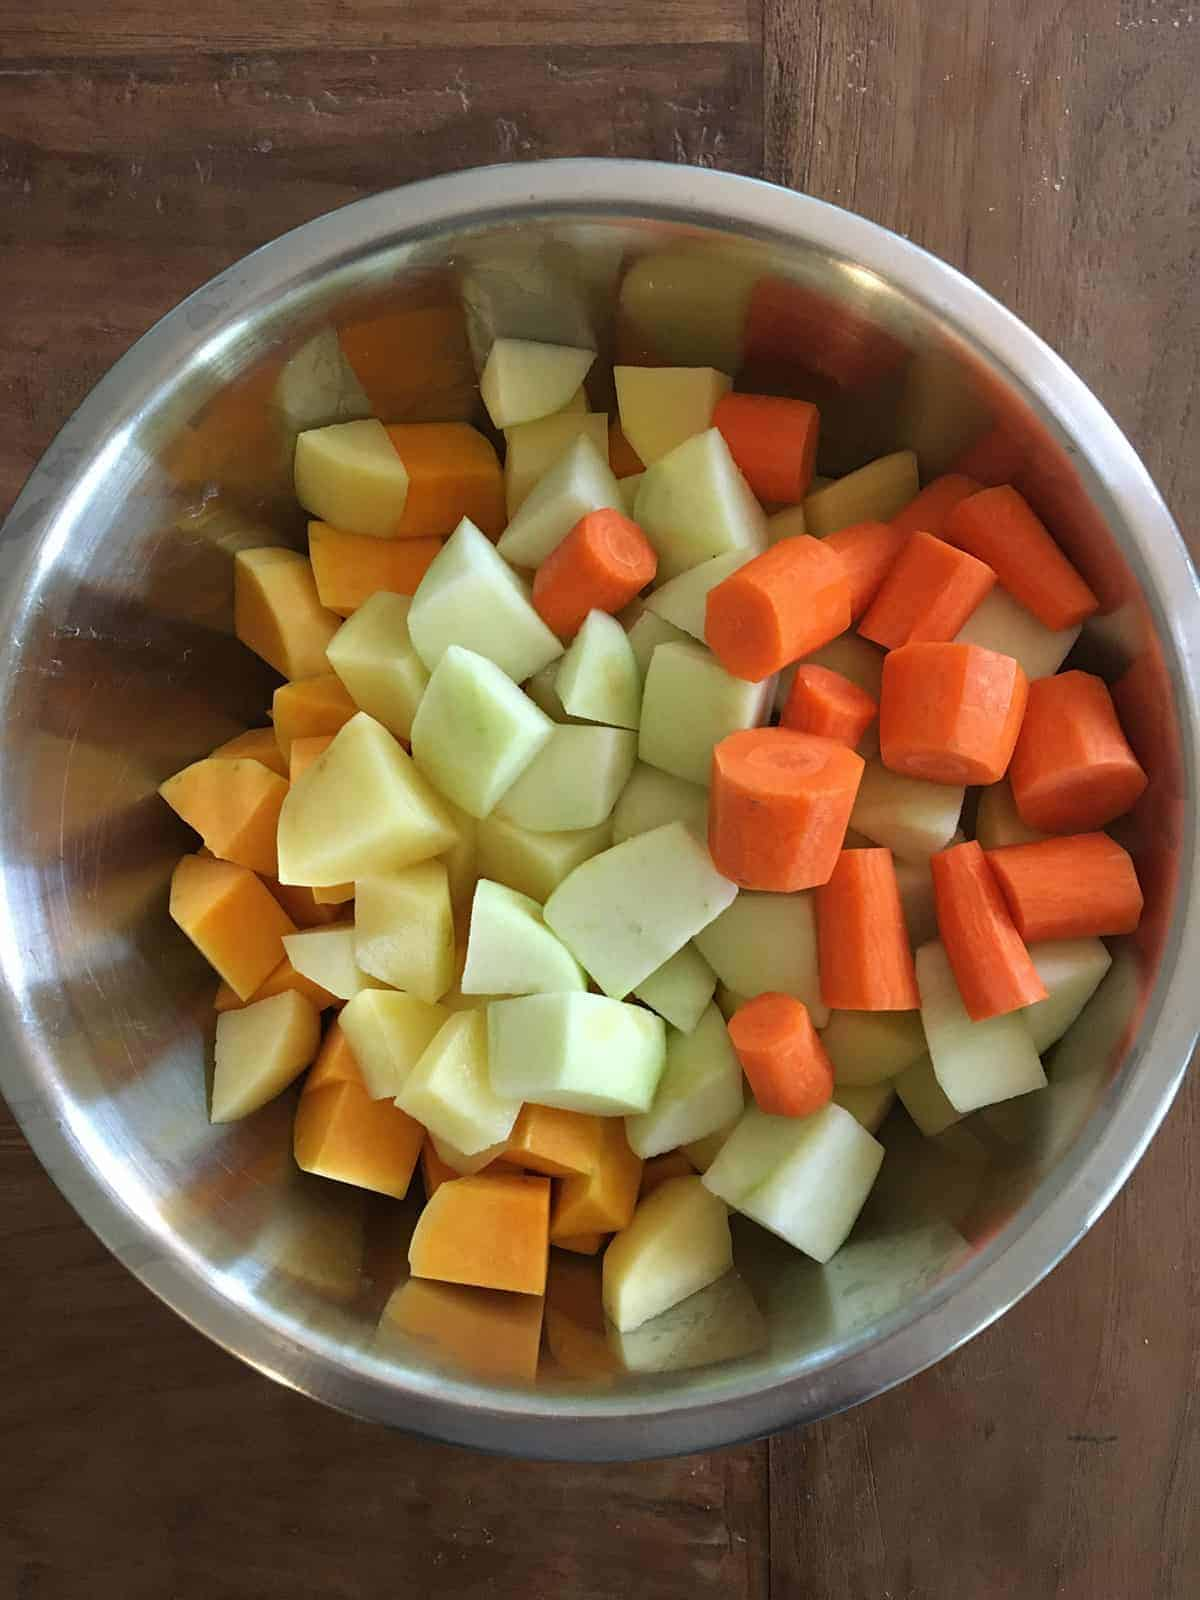 Chopped butternut squash, potatoes, apples and carrots in a stainless steel bowl